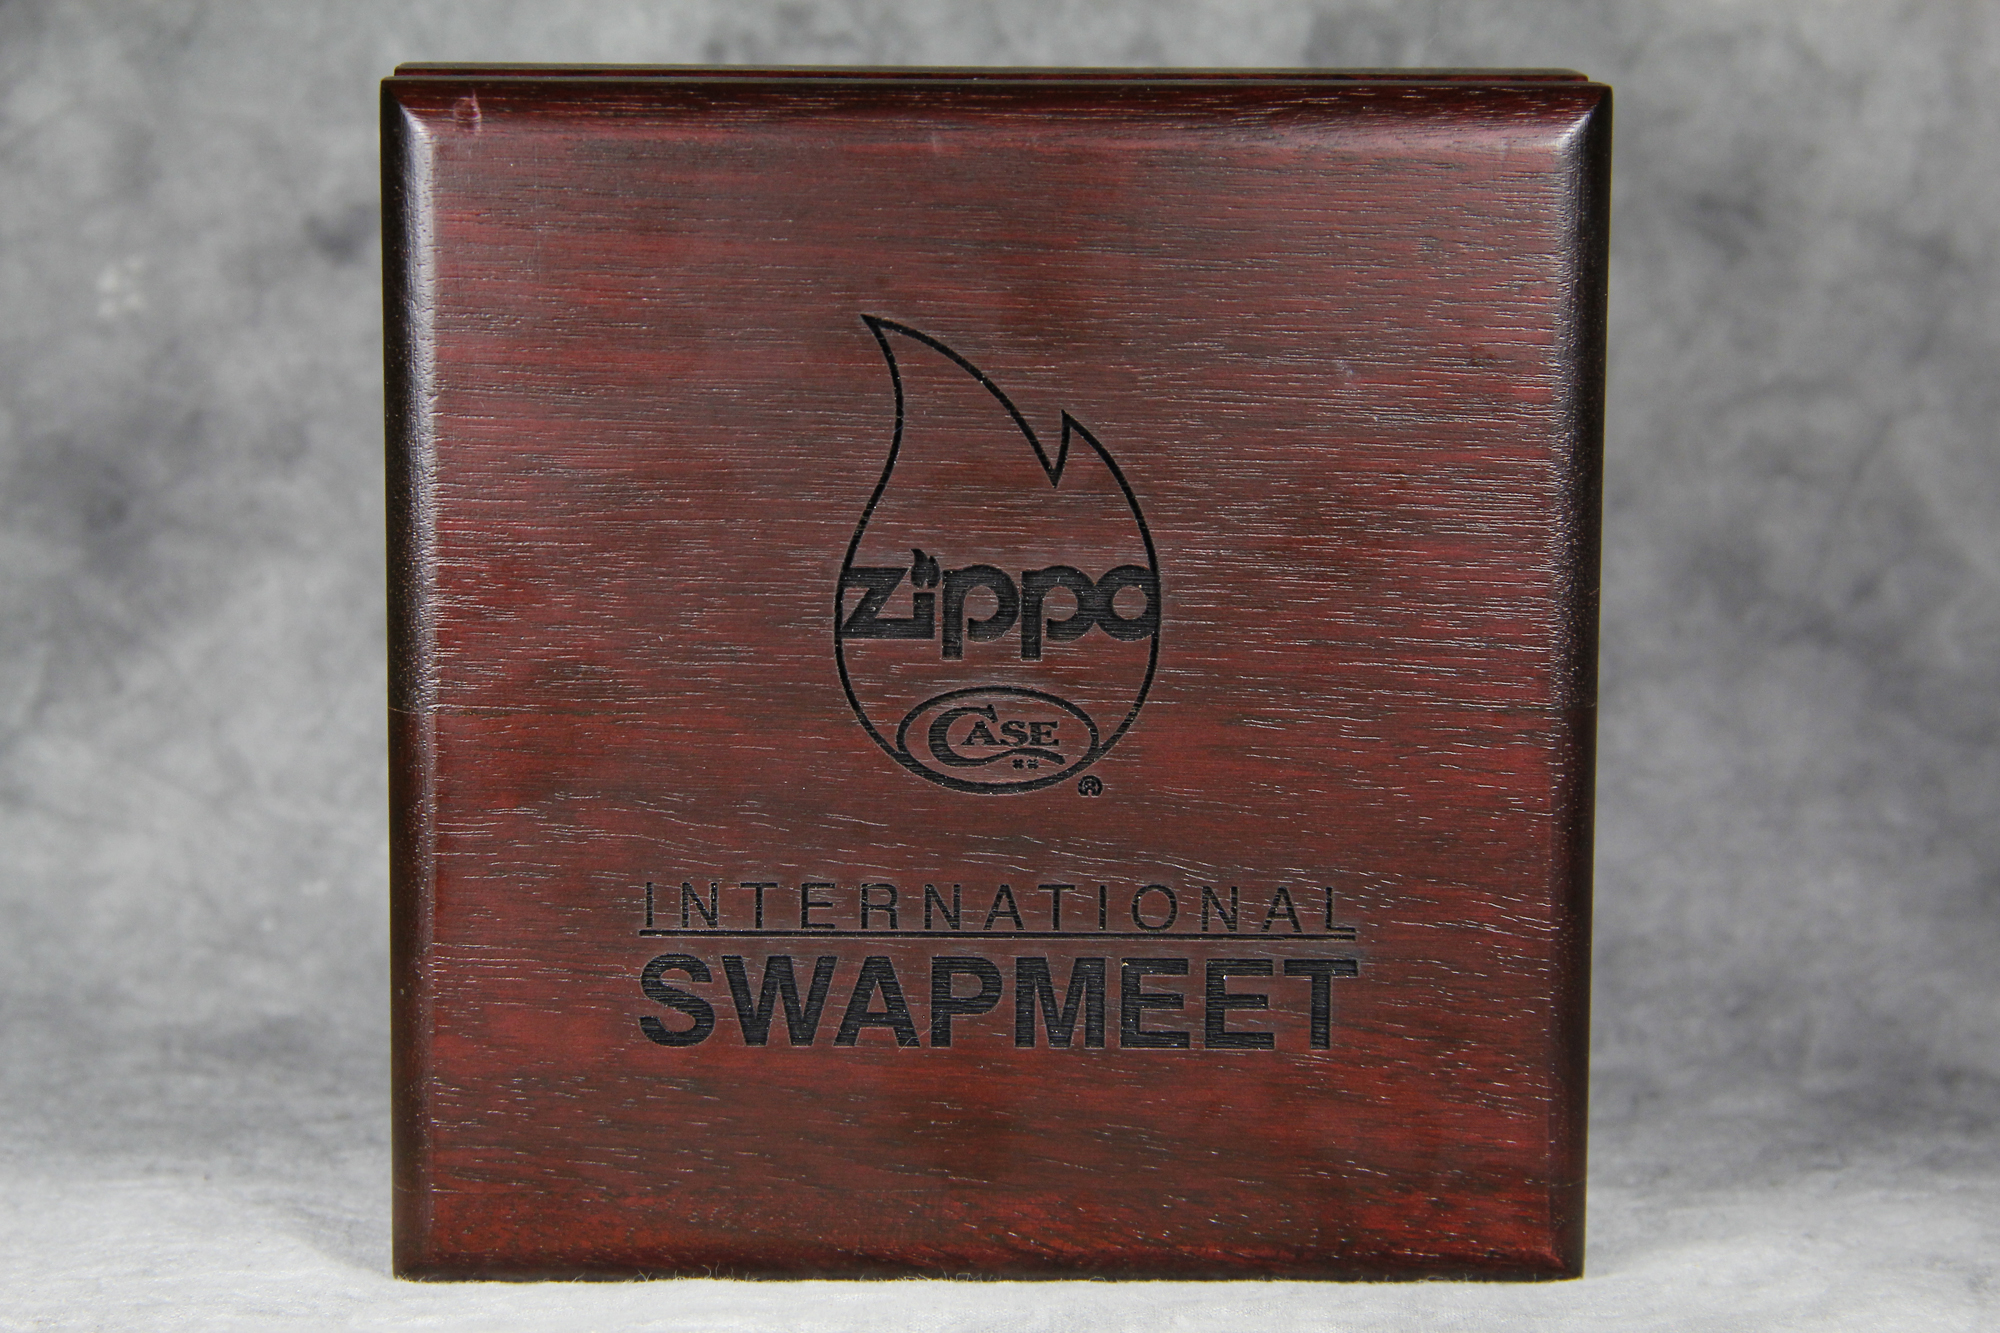 dating zippo boxes Zippo barcroft no 4, 1953 labels:  the zippo barcroft is the proud successor of the zippo #10 which was produced till 1953  mint in box pepe.